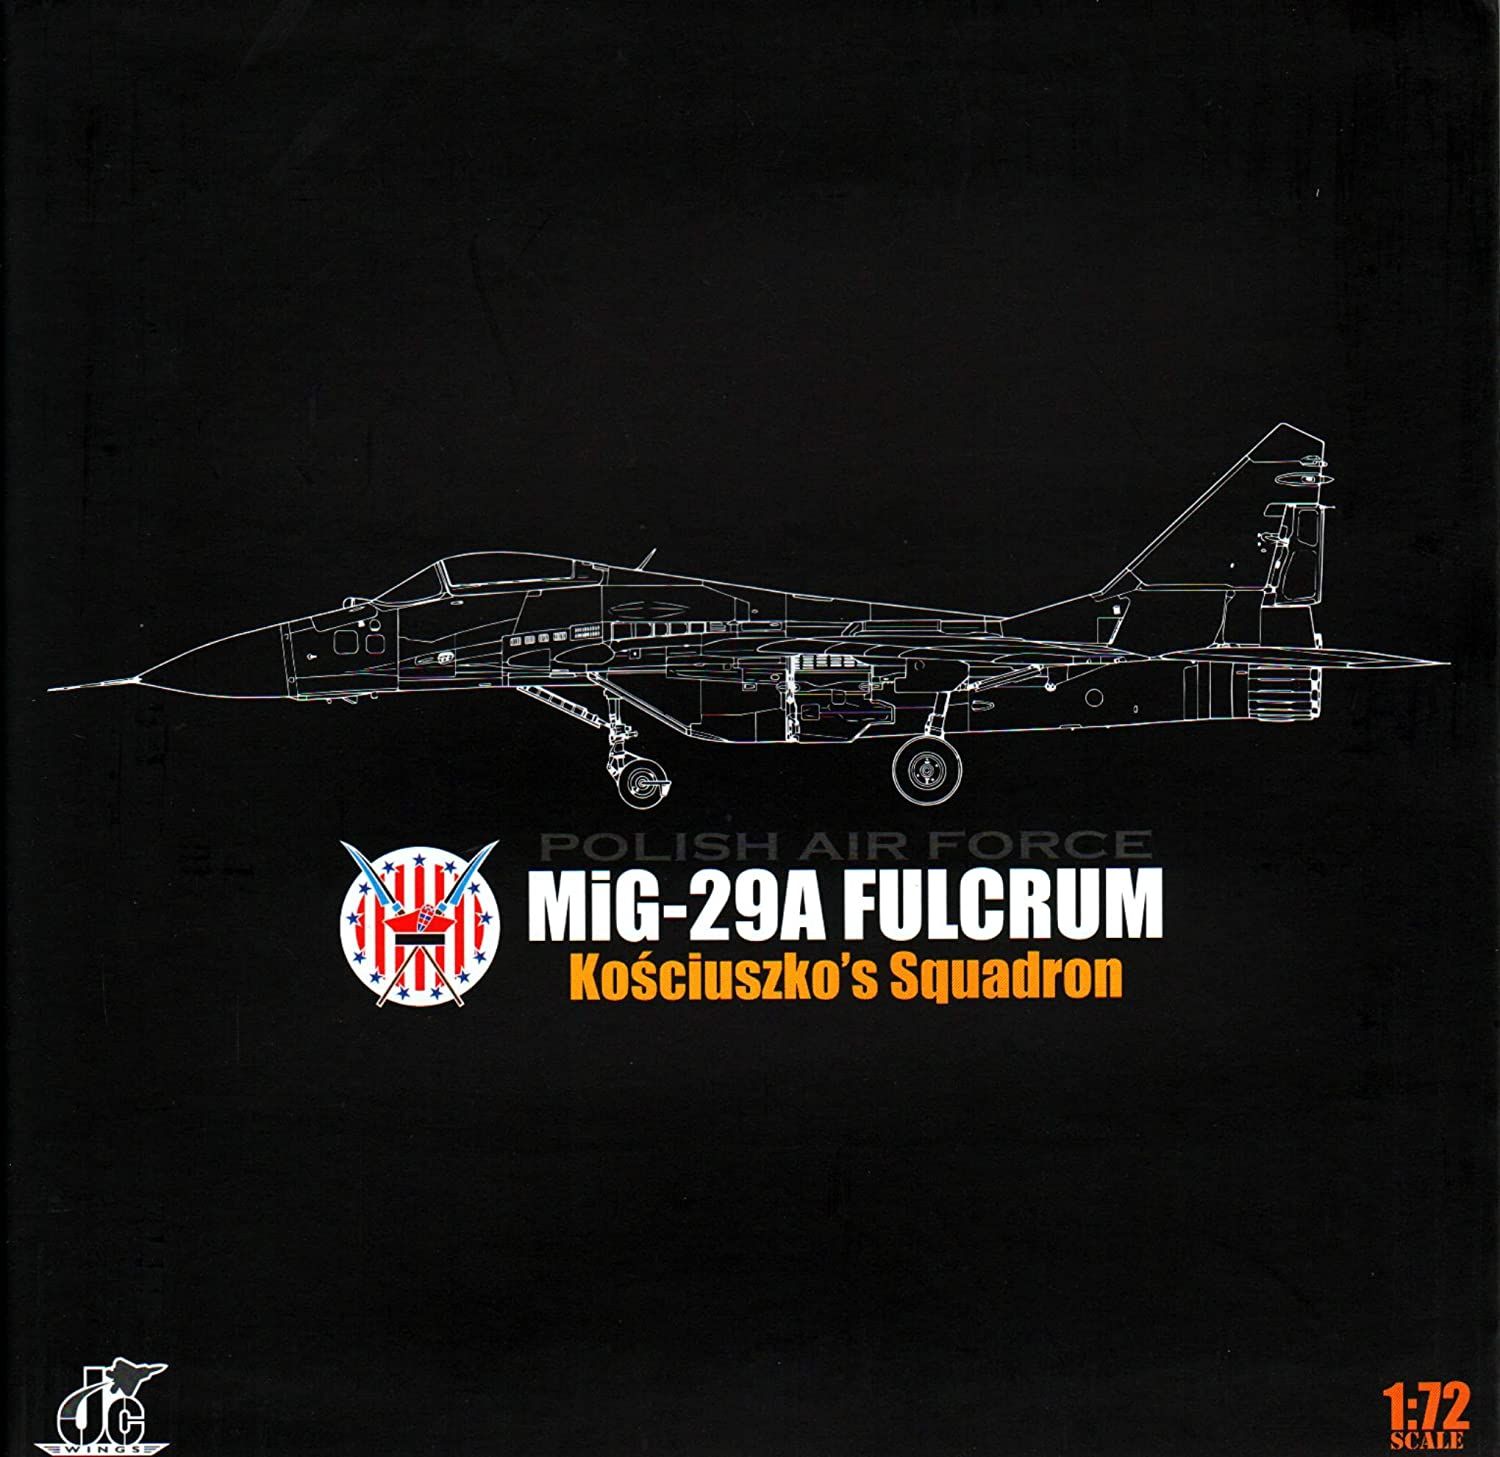 Amazon com: JCW72MG29003 1:72 JC Wings Military MiG-29A Fulcrum